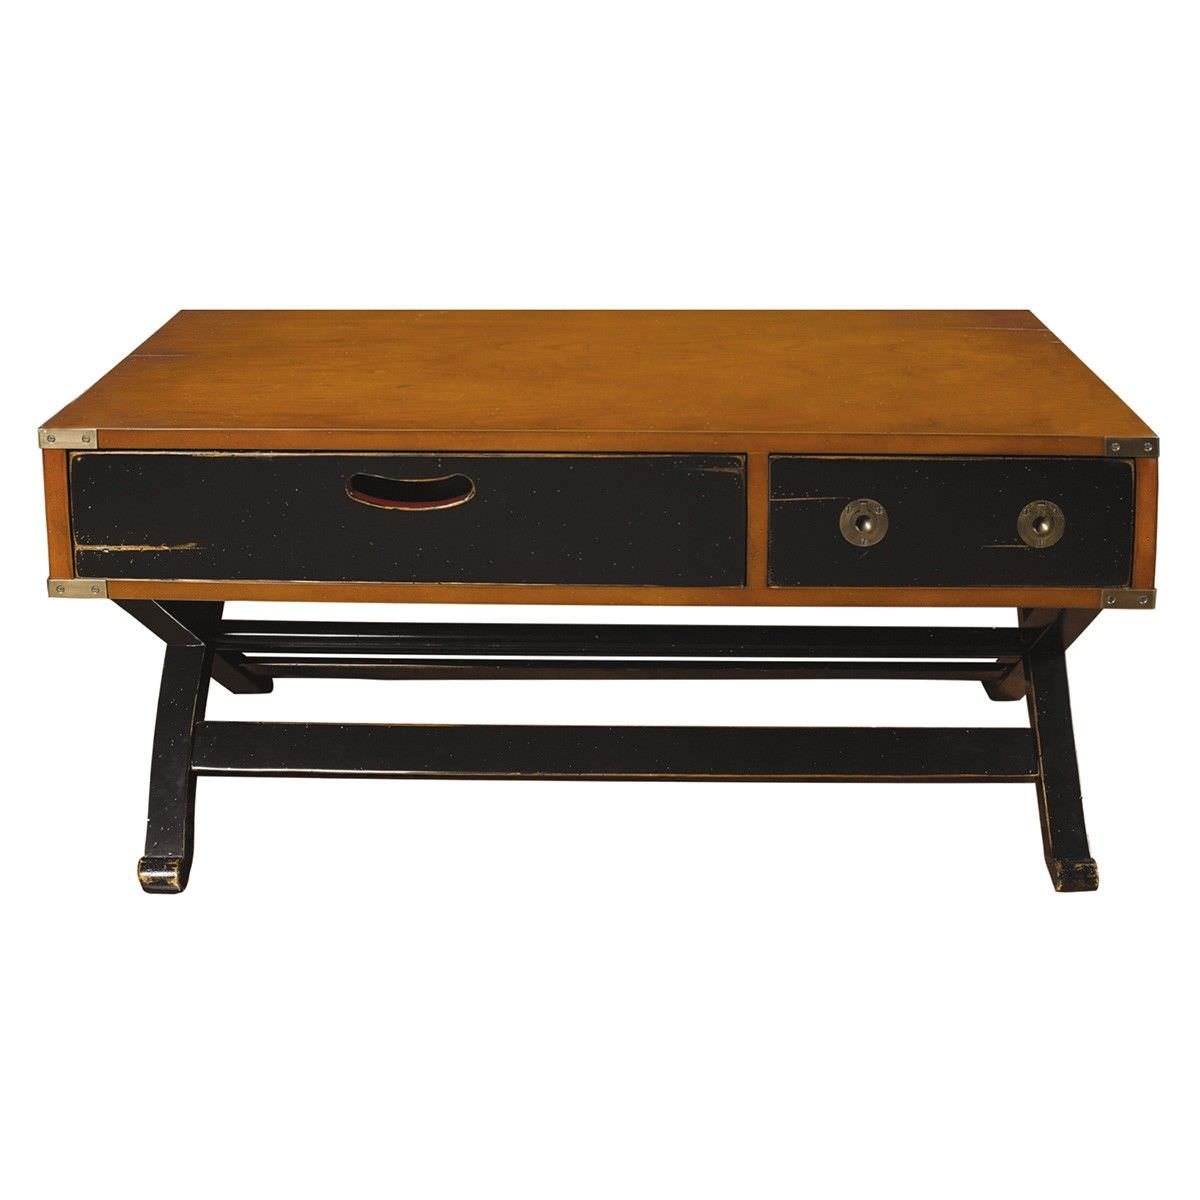 Travel Solid Timber Coffee Table, 100cm